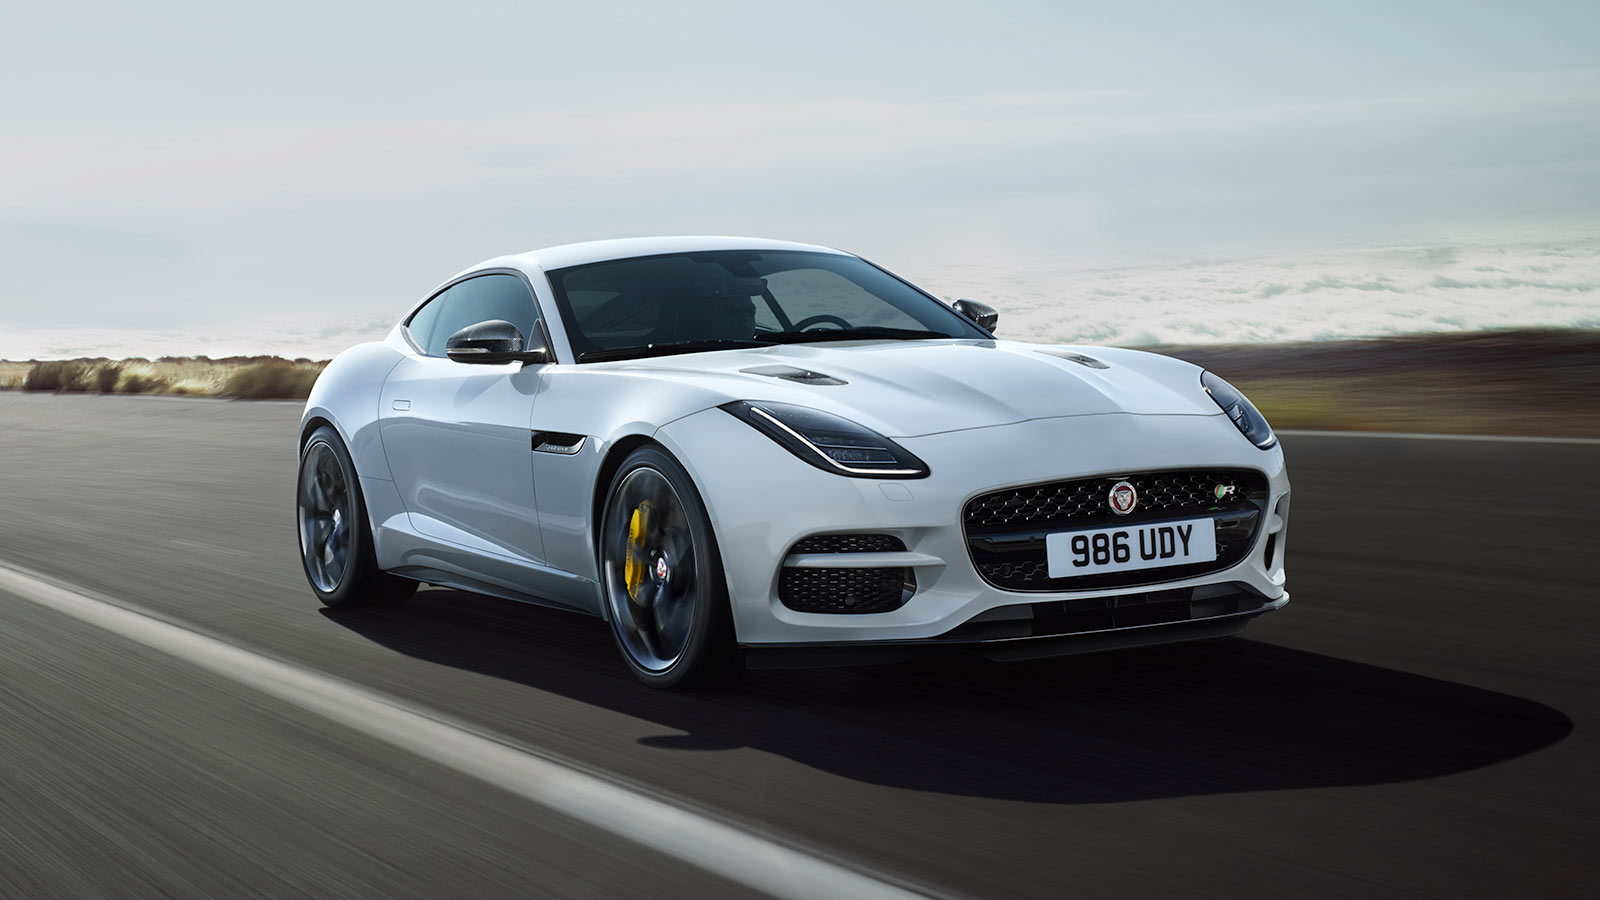 Jaguar F Type 2 0 Chequered Flag Special Editions 3 0 Automatic 2 Door Coupe 19my At Jaguar Barnet